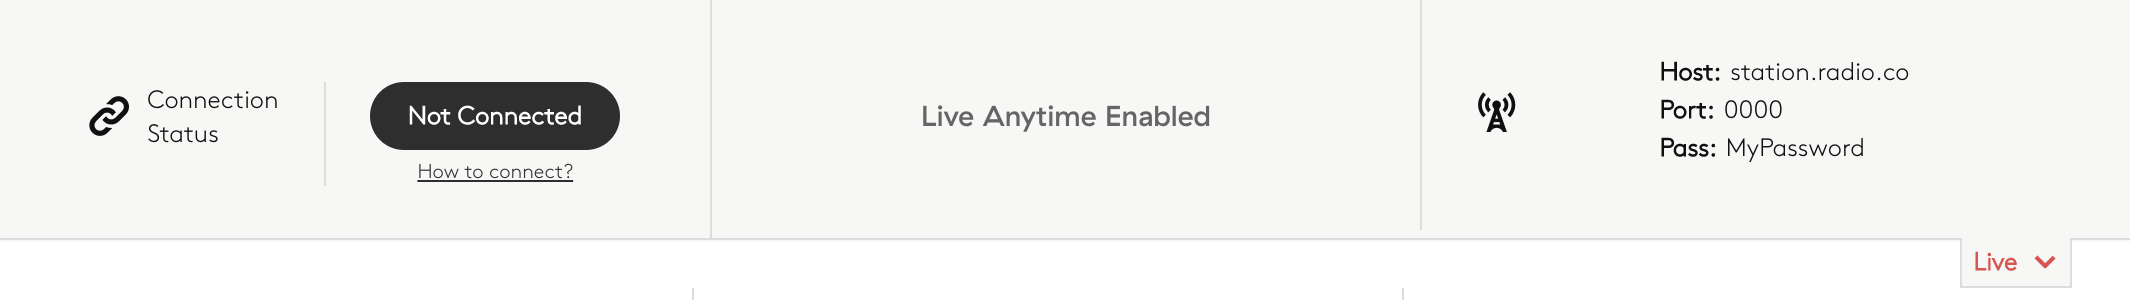 Live anytime enabled.